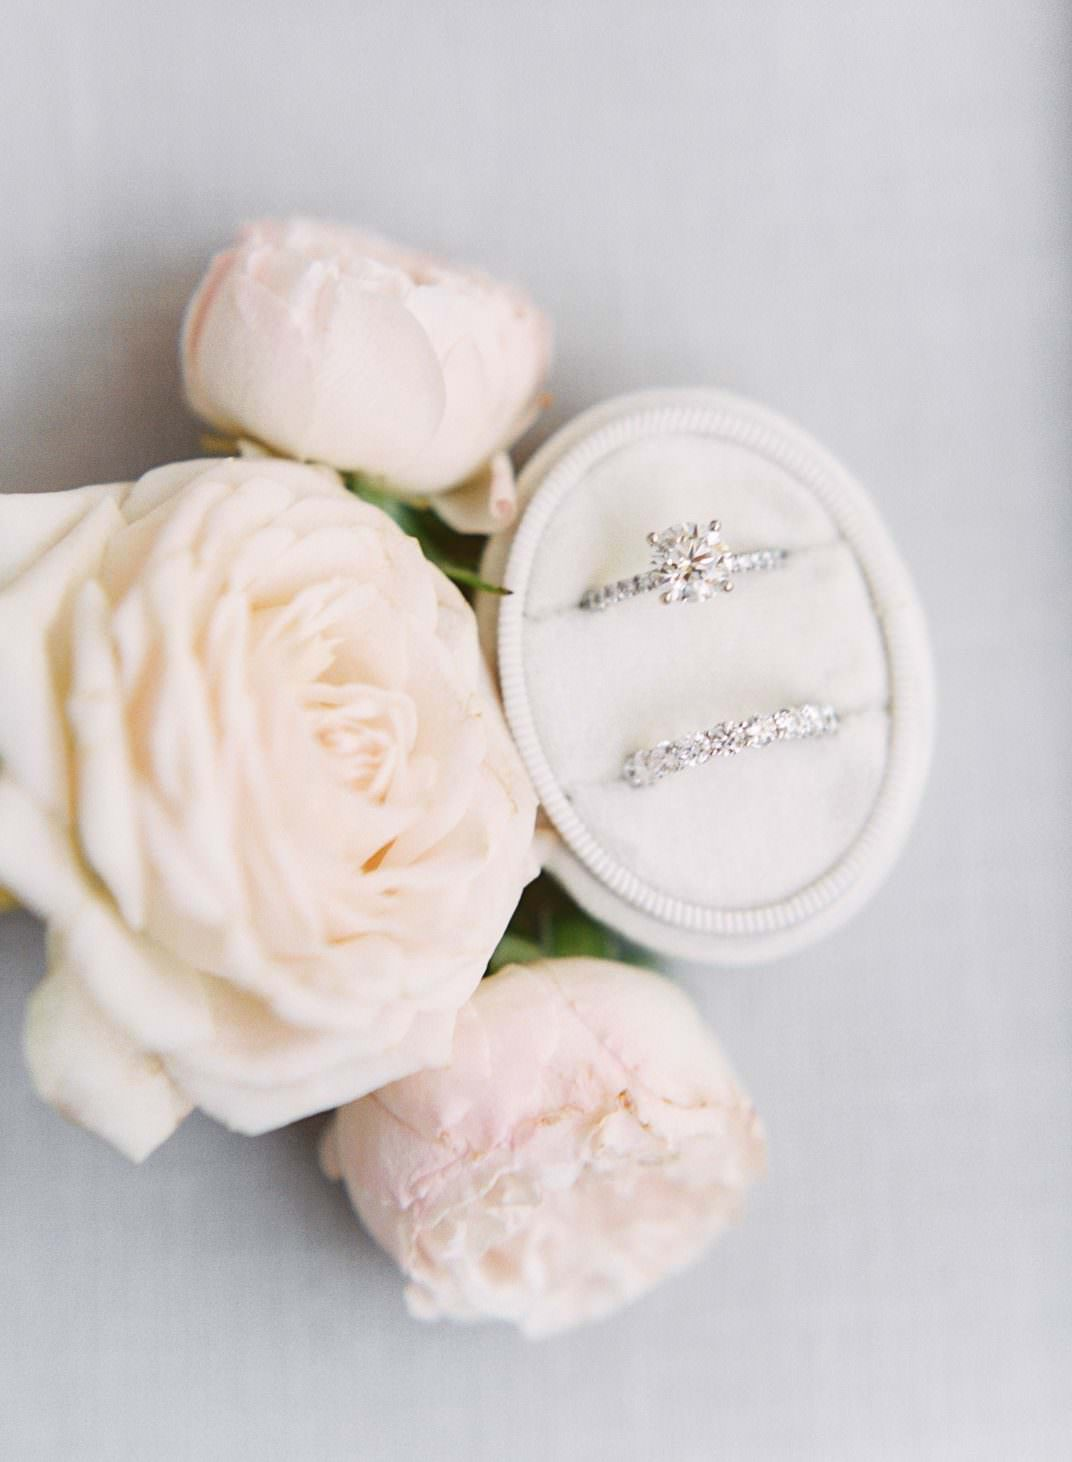 Brides diamond ring with pave band and matching wedding band in an oval ivory velvet ring box styled with blush roses. Wedding at Rancho Bernardo Inn. Film photo by Cavin Elizabeth Photography